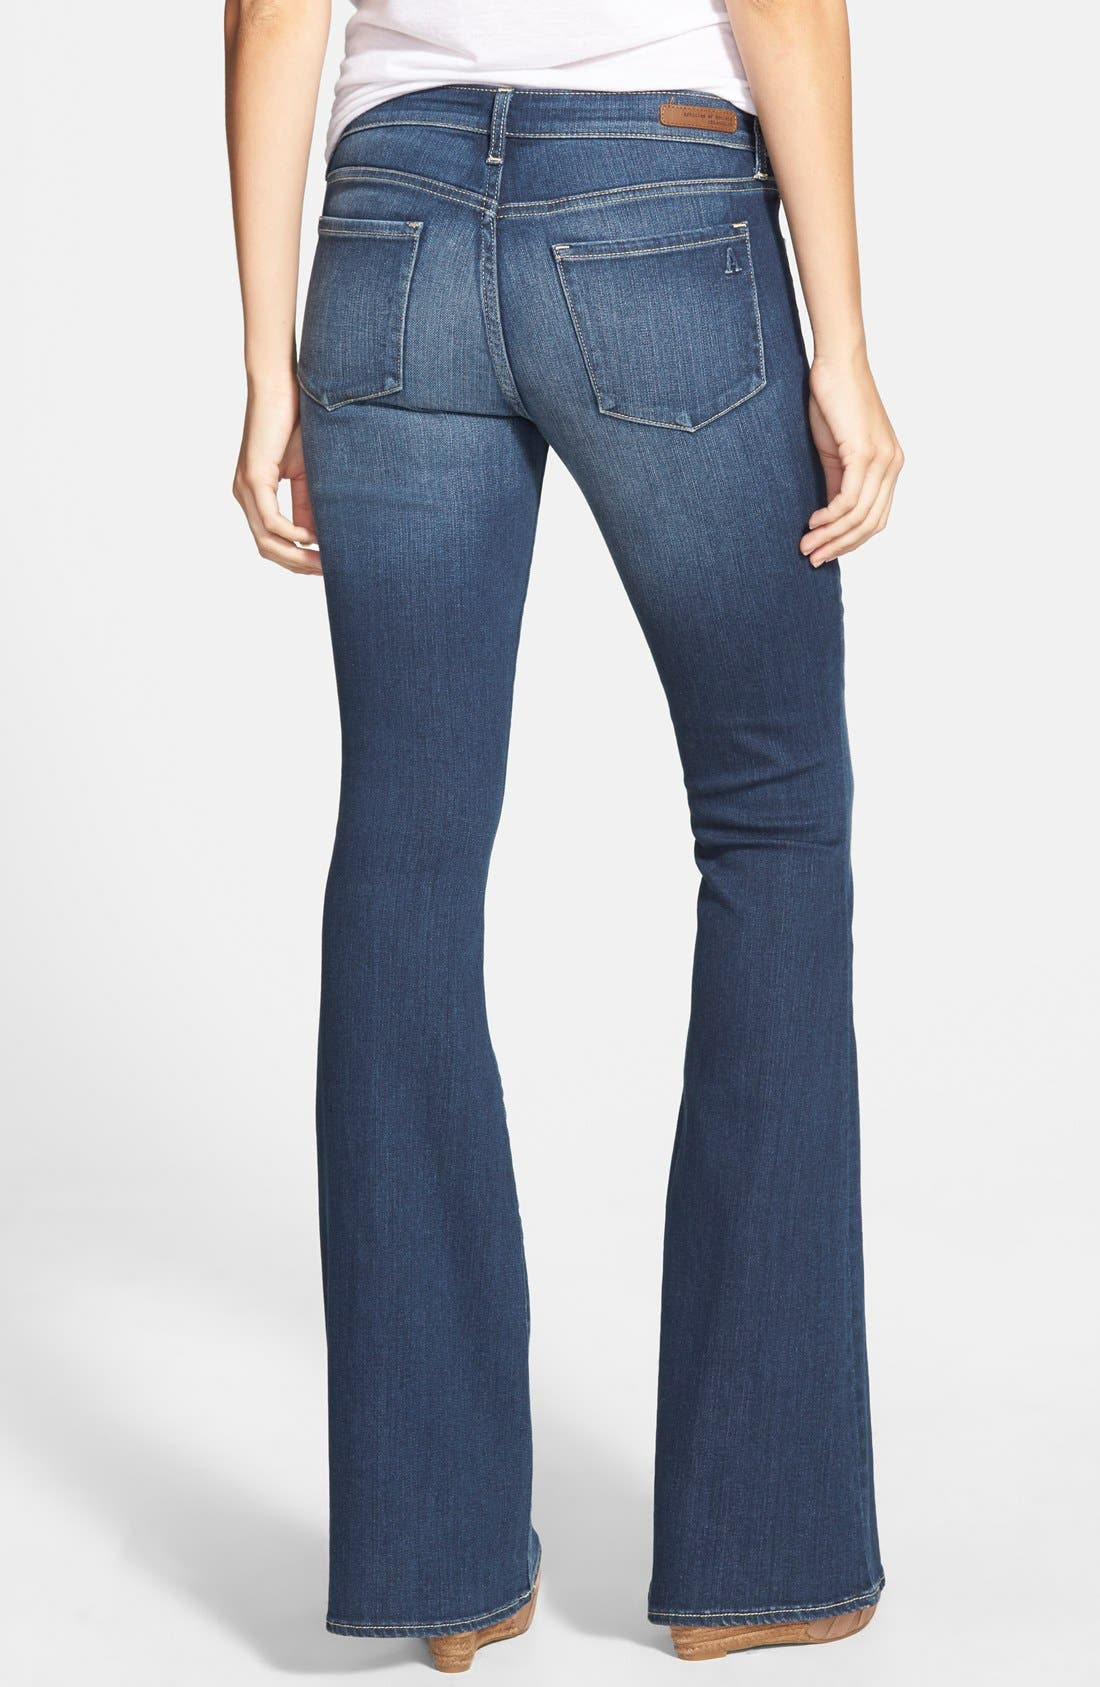 'Faith' Flare Jeans,                             Alternate thumbnail 2, color,                             400